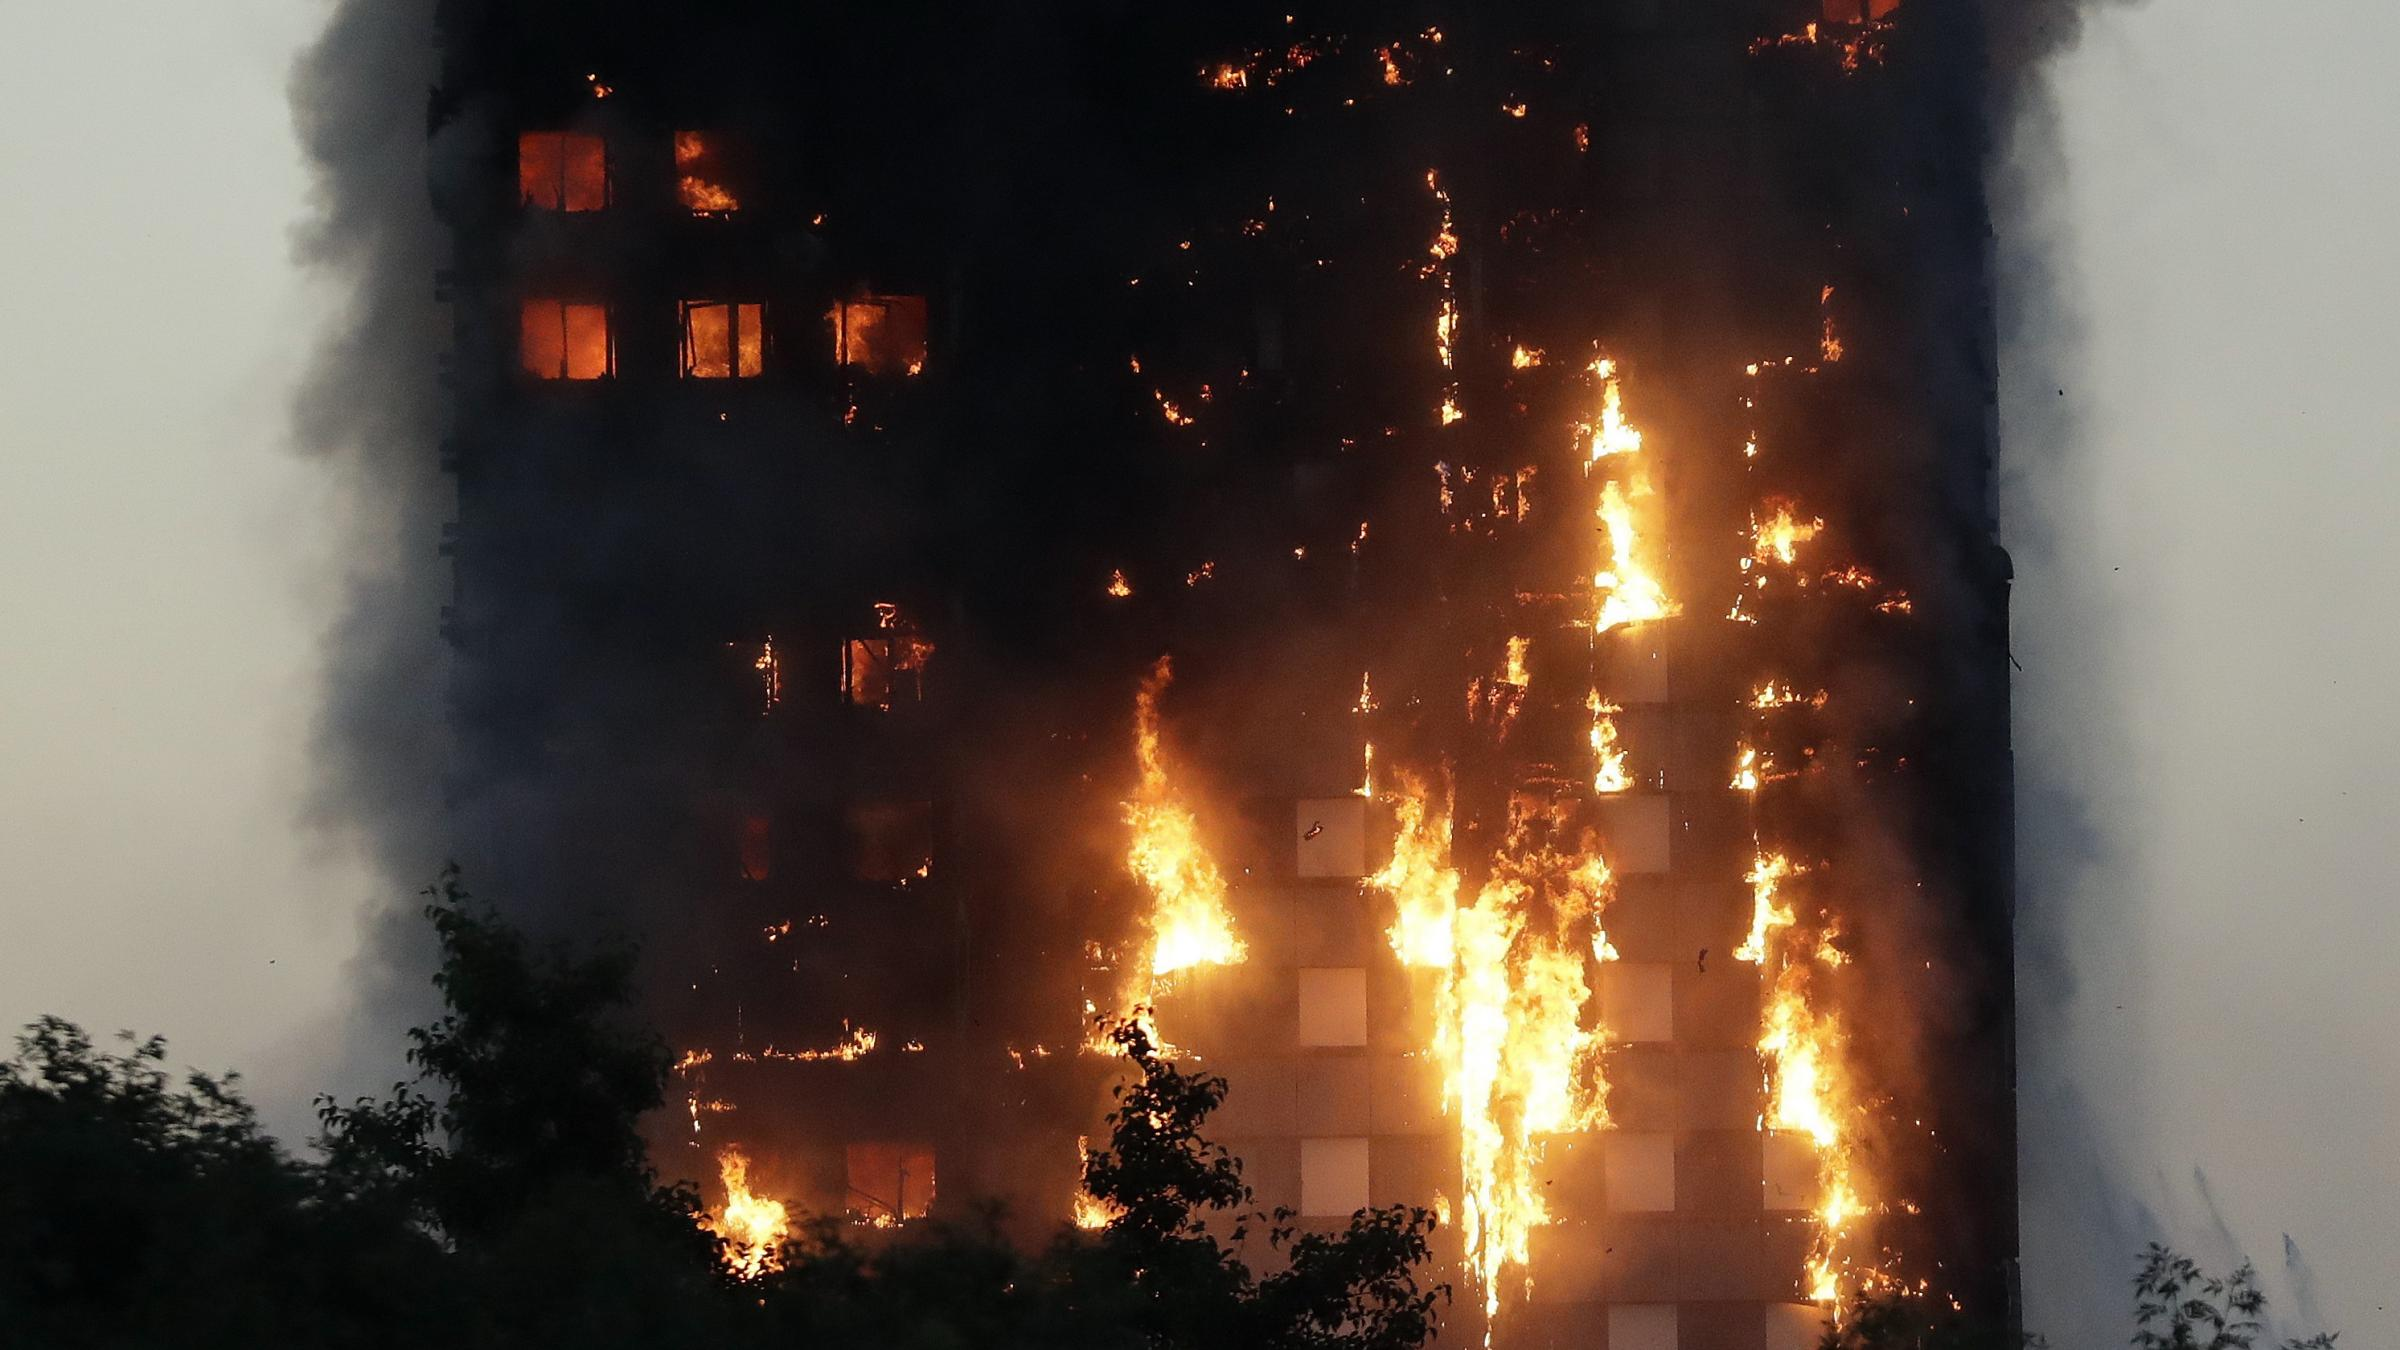 Massive fire engulfs high rise in London